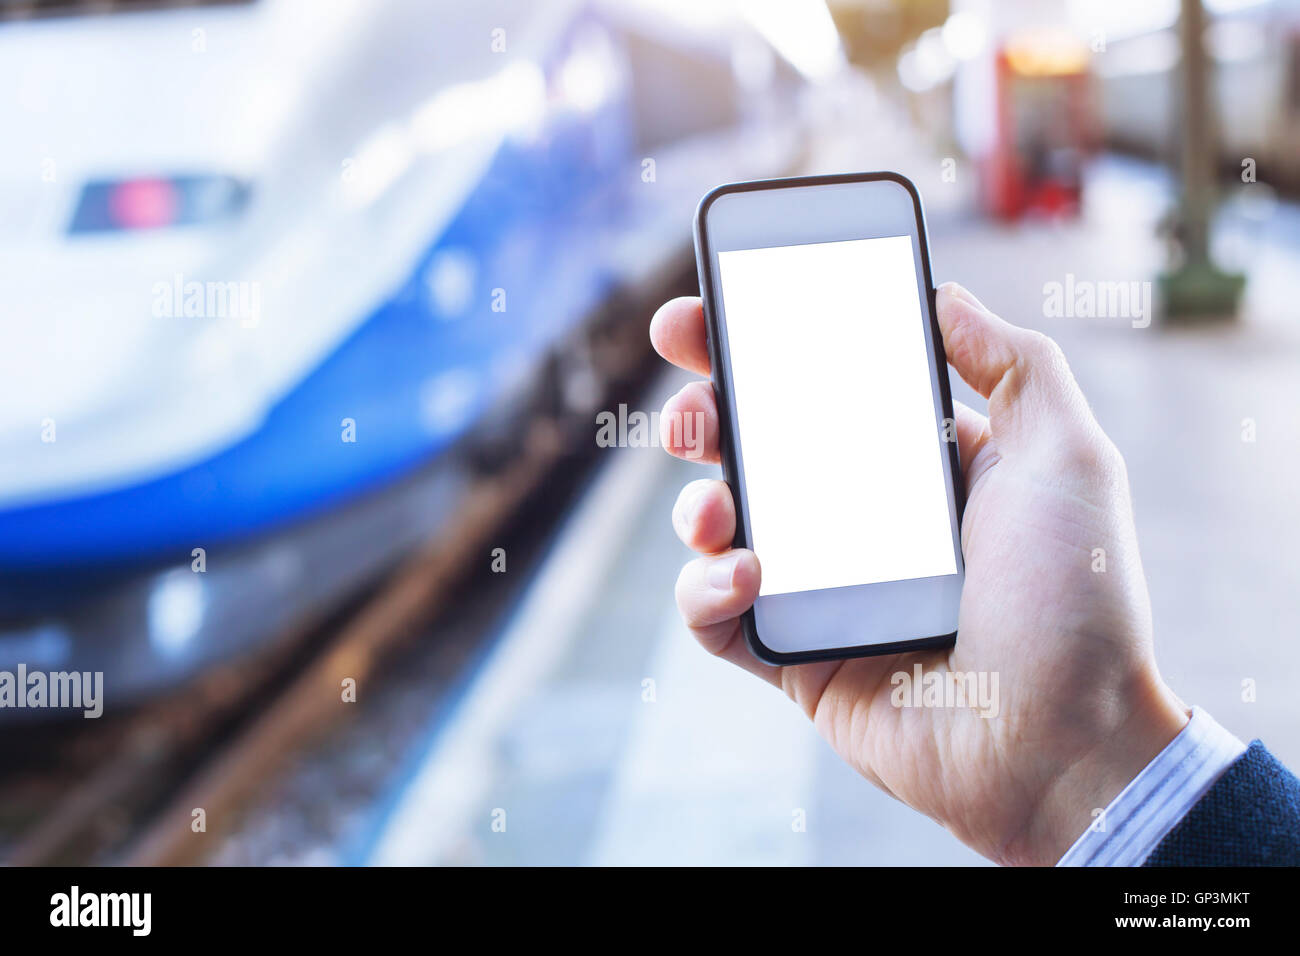 hand holding smartphone with empty blank screen in train station - Stock Image